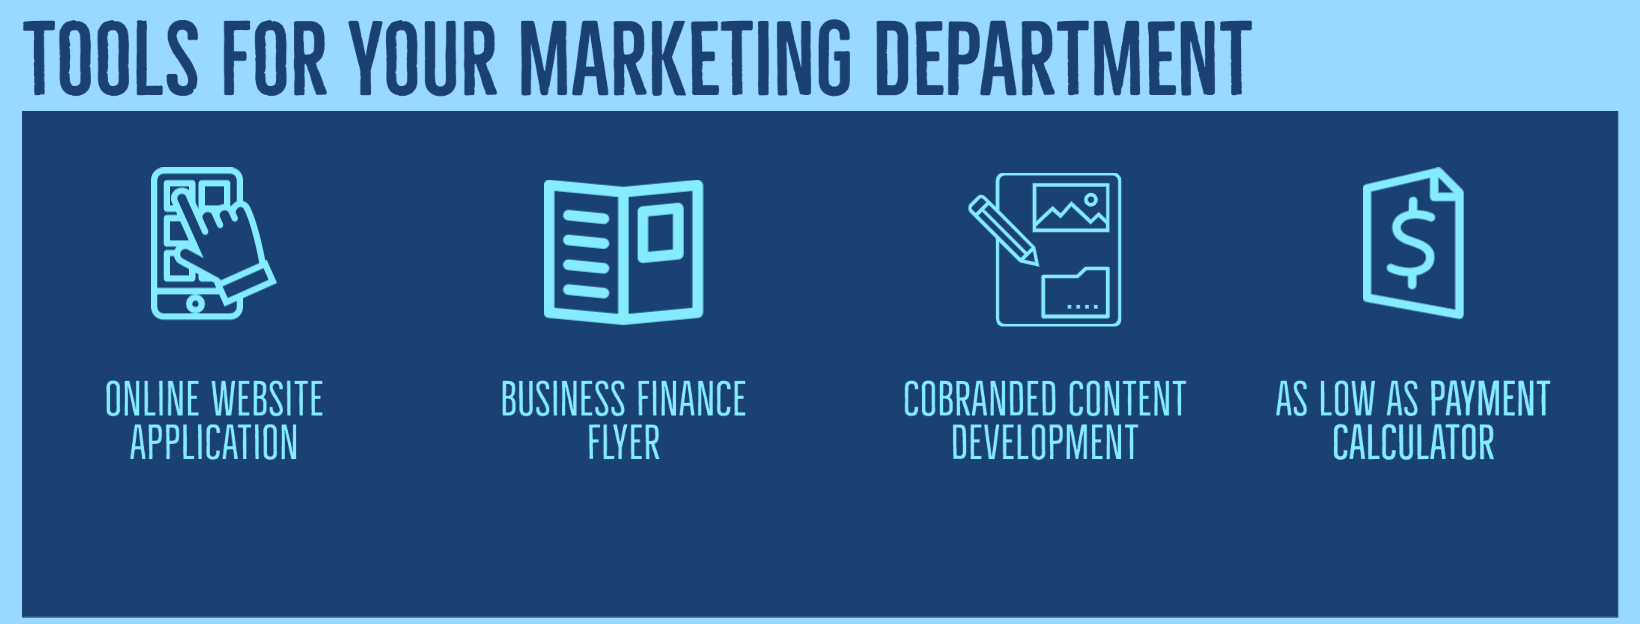 TOOLS FOR YOUR MARKETING DEPARTMENT